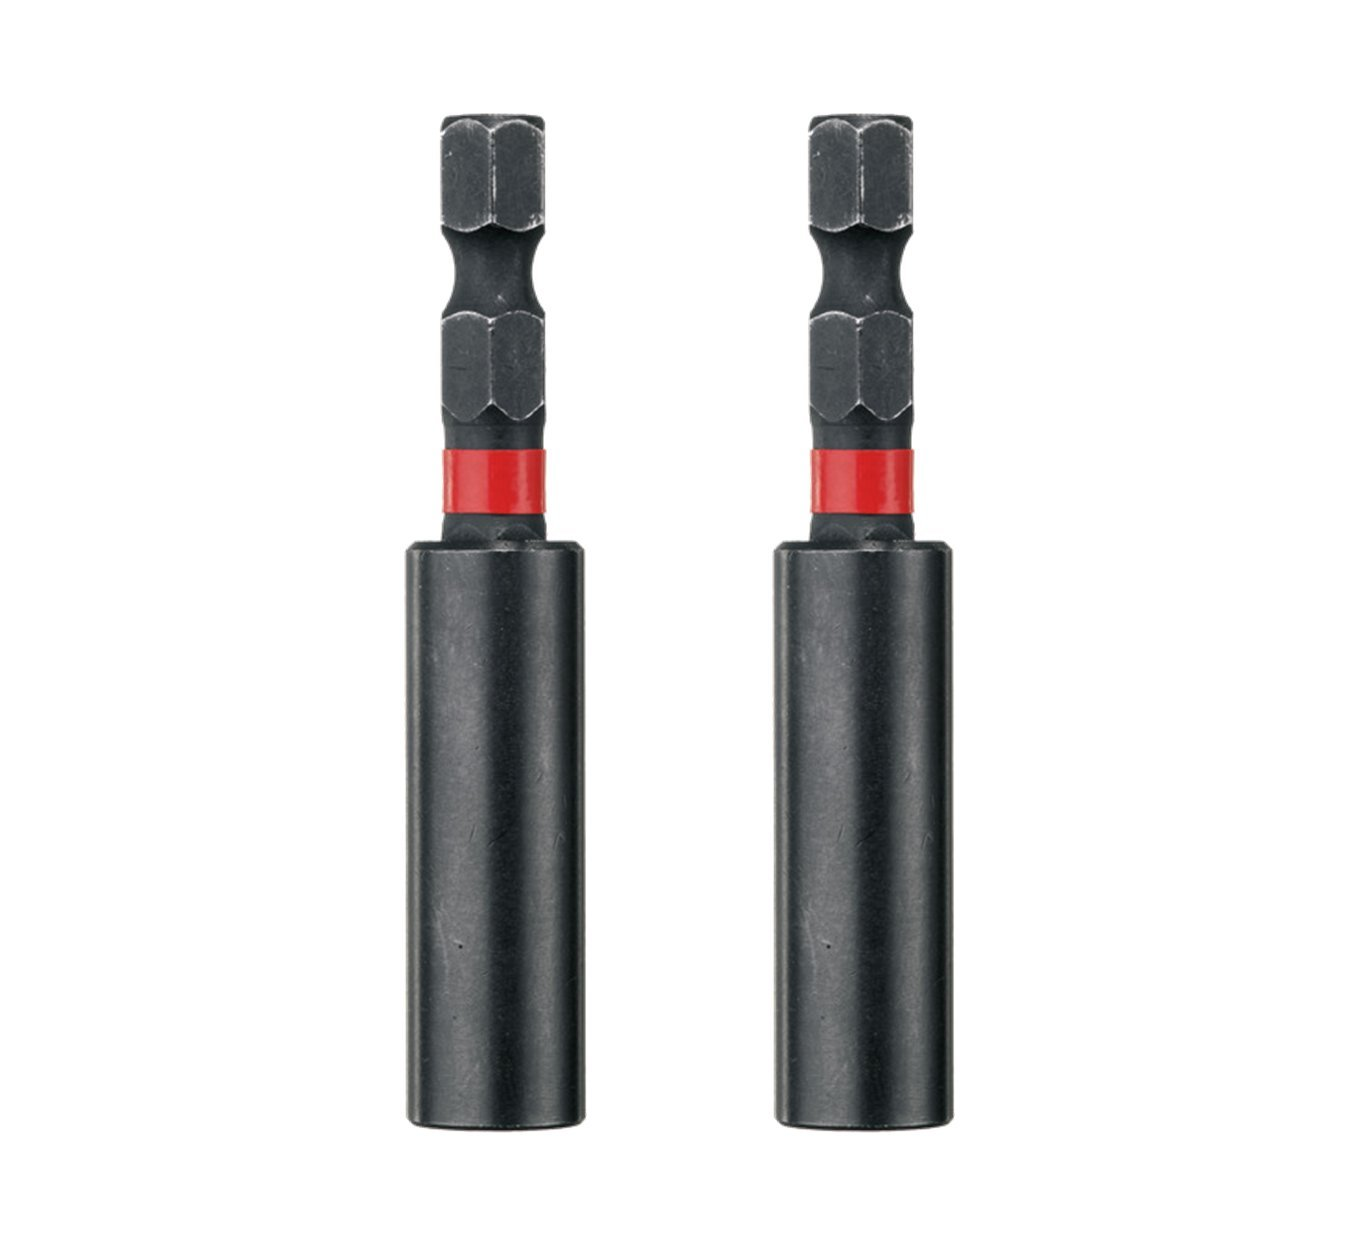 Milwaukee 5060342801517 Pack of 2 1/4' Hex Shockwave Duty Magnetic Impact Screwdriver Bit Holder, Black, Set of 2 Pieces